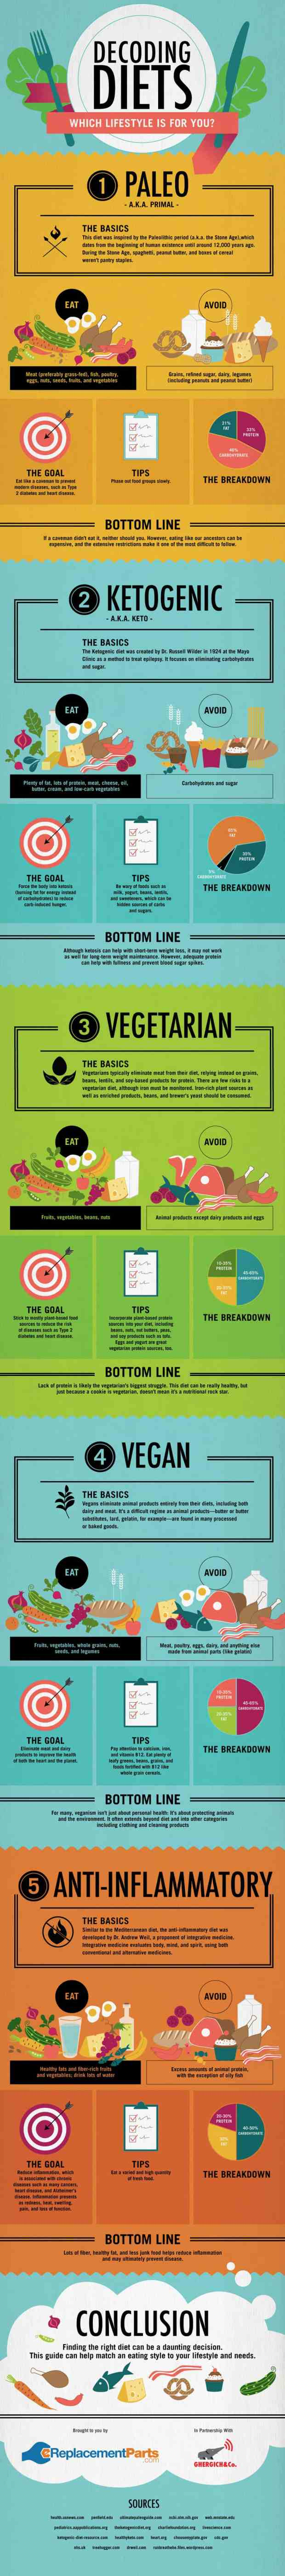 Decoding Diets Infographic